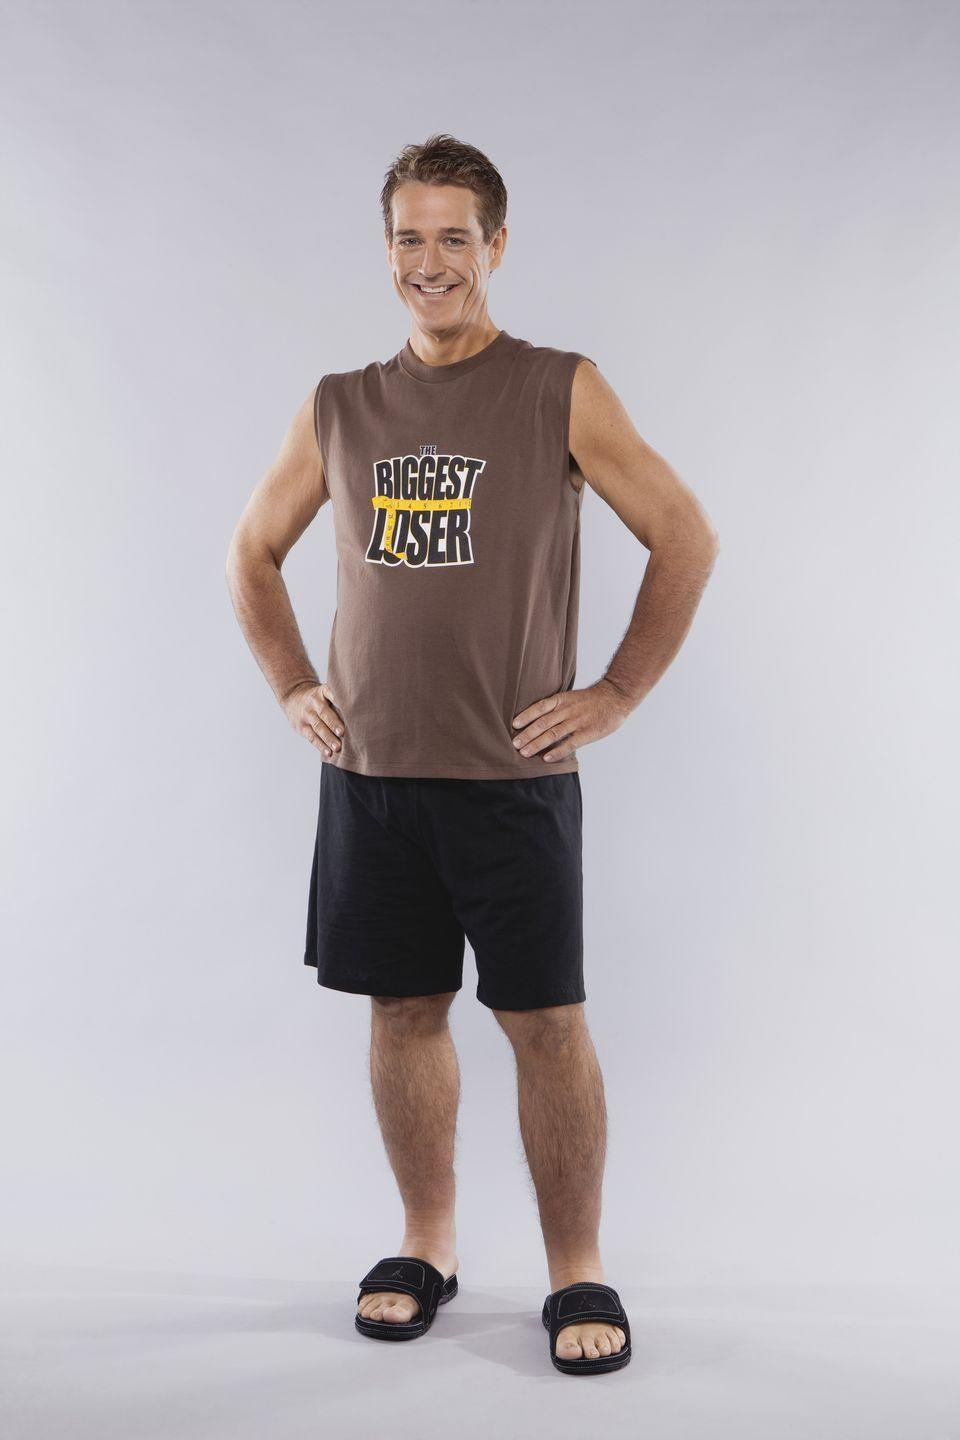 """<p>Danny lost 239 pounds by the end—nearly 56 percent of his body weight—to claim the title. He's kept the weight off and currently runs <a href=""""http://thedannycahill.com/"""" rel=""""nofollow noopener"""" target=""""_blank"""" data-ylk=""""slk:TheDannyCahill.com"""" class=""""link rapid-noclick-resp"""">TheDannyCahill.com</a>, a self-help, motivational company.</p>"""